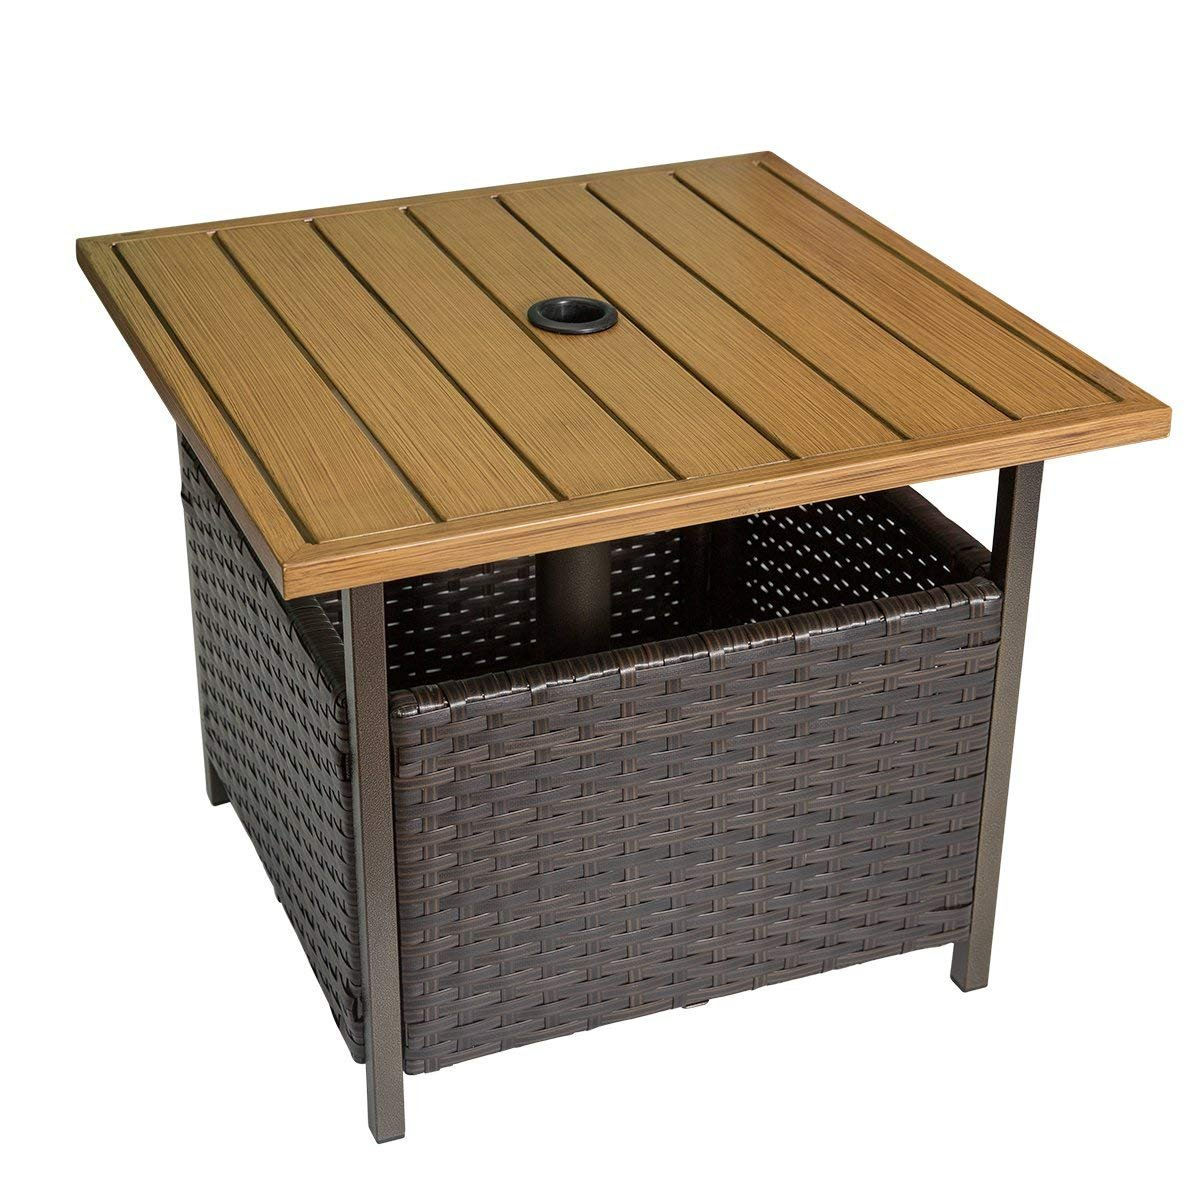 ARTALL Patio Wicker Bistro Dining Table, Square Umbrella Table with Storage Space, Garden Leisure Coffee Side Table